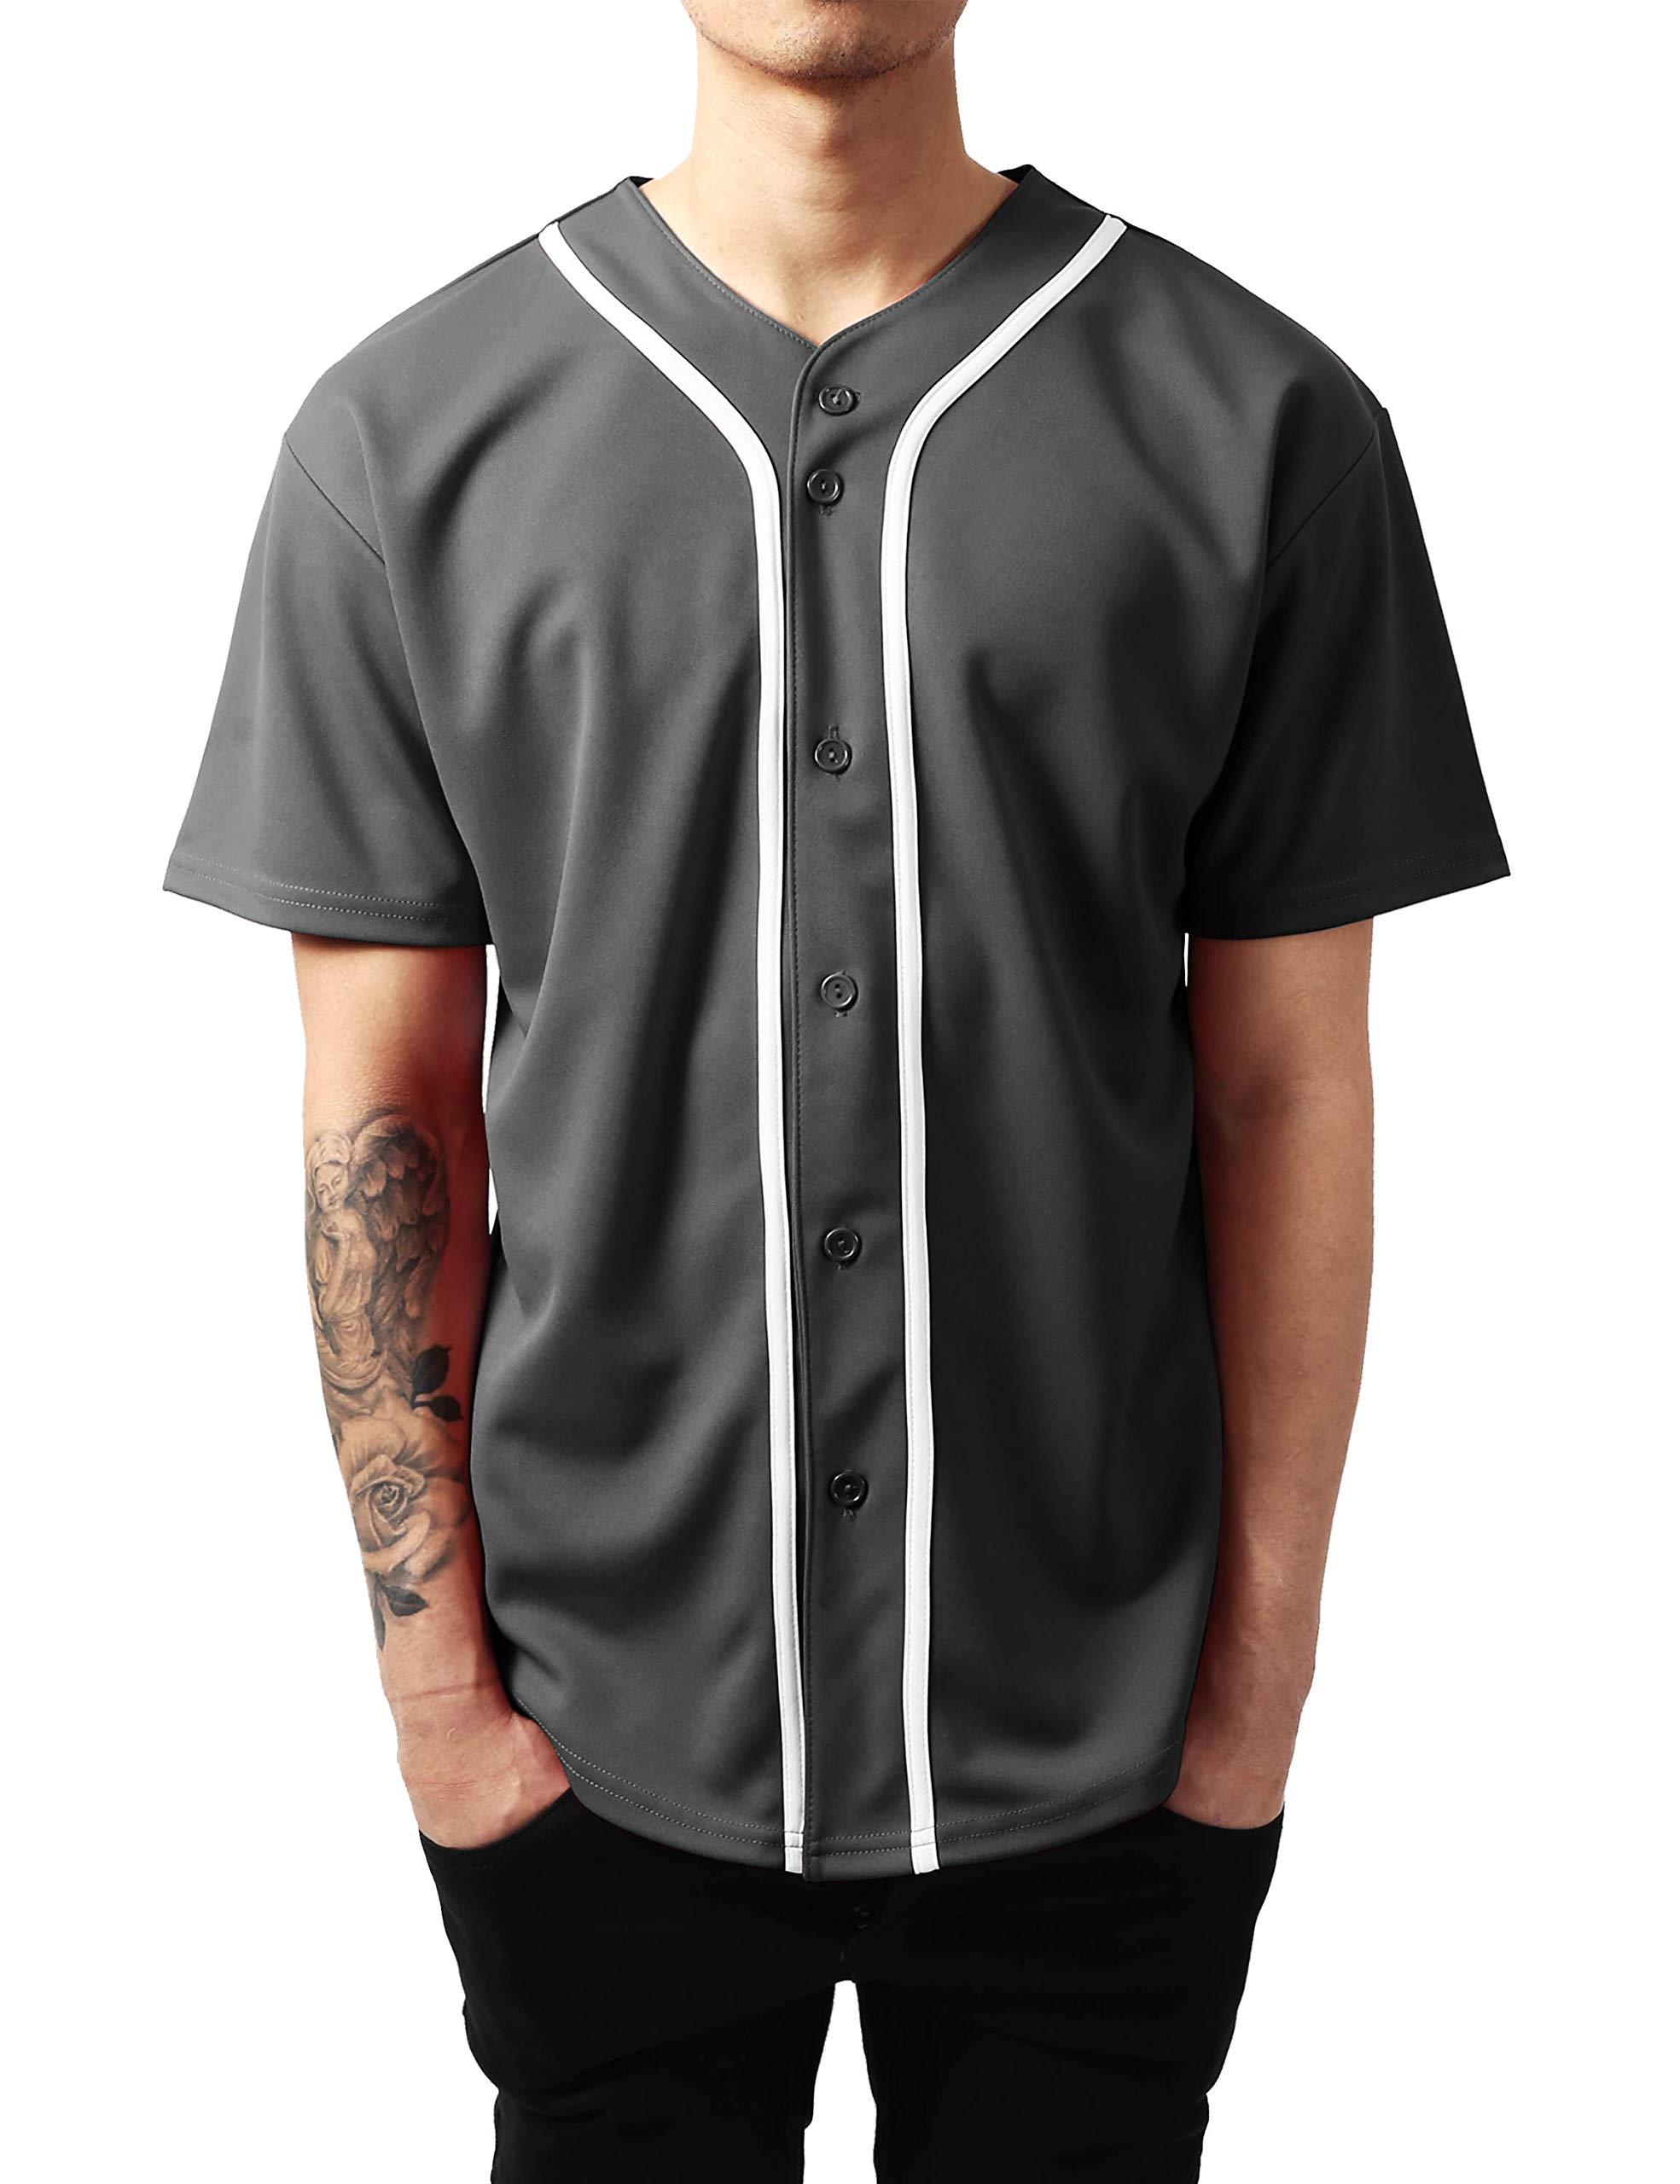 Ma Croix Mens Premium Baseball Jersey Active Button Shirt Team Uniform (Medium, 1up01_Charcoal/White) by Ma Croix